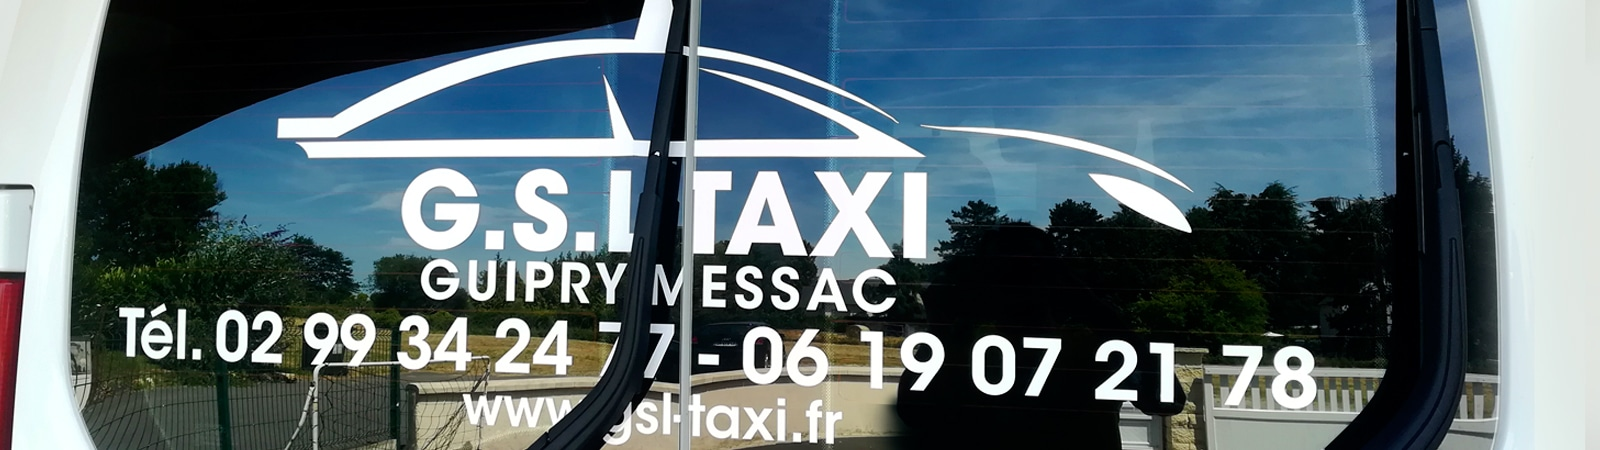 taxi guipry messac